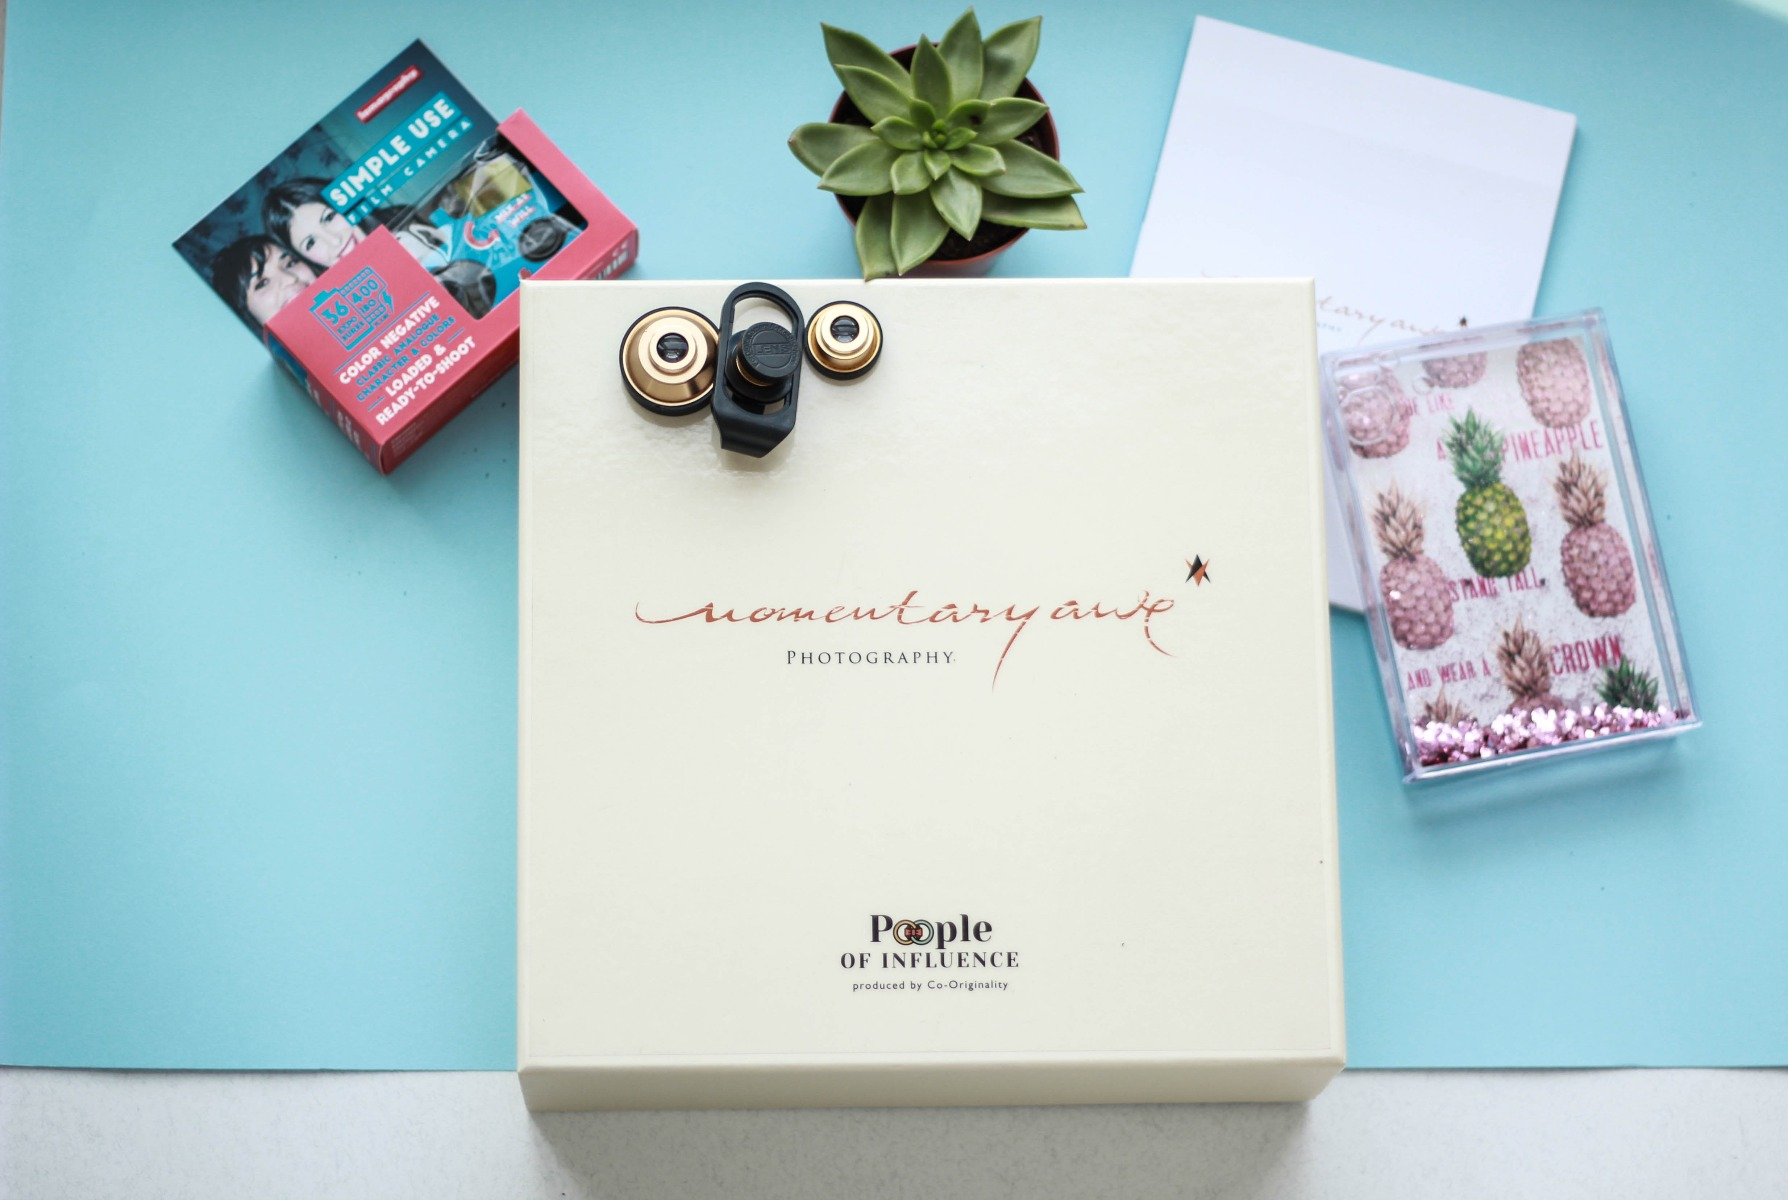 The Capture Your Moment Box